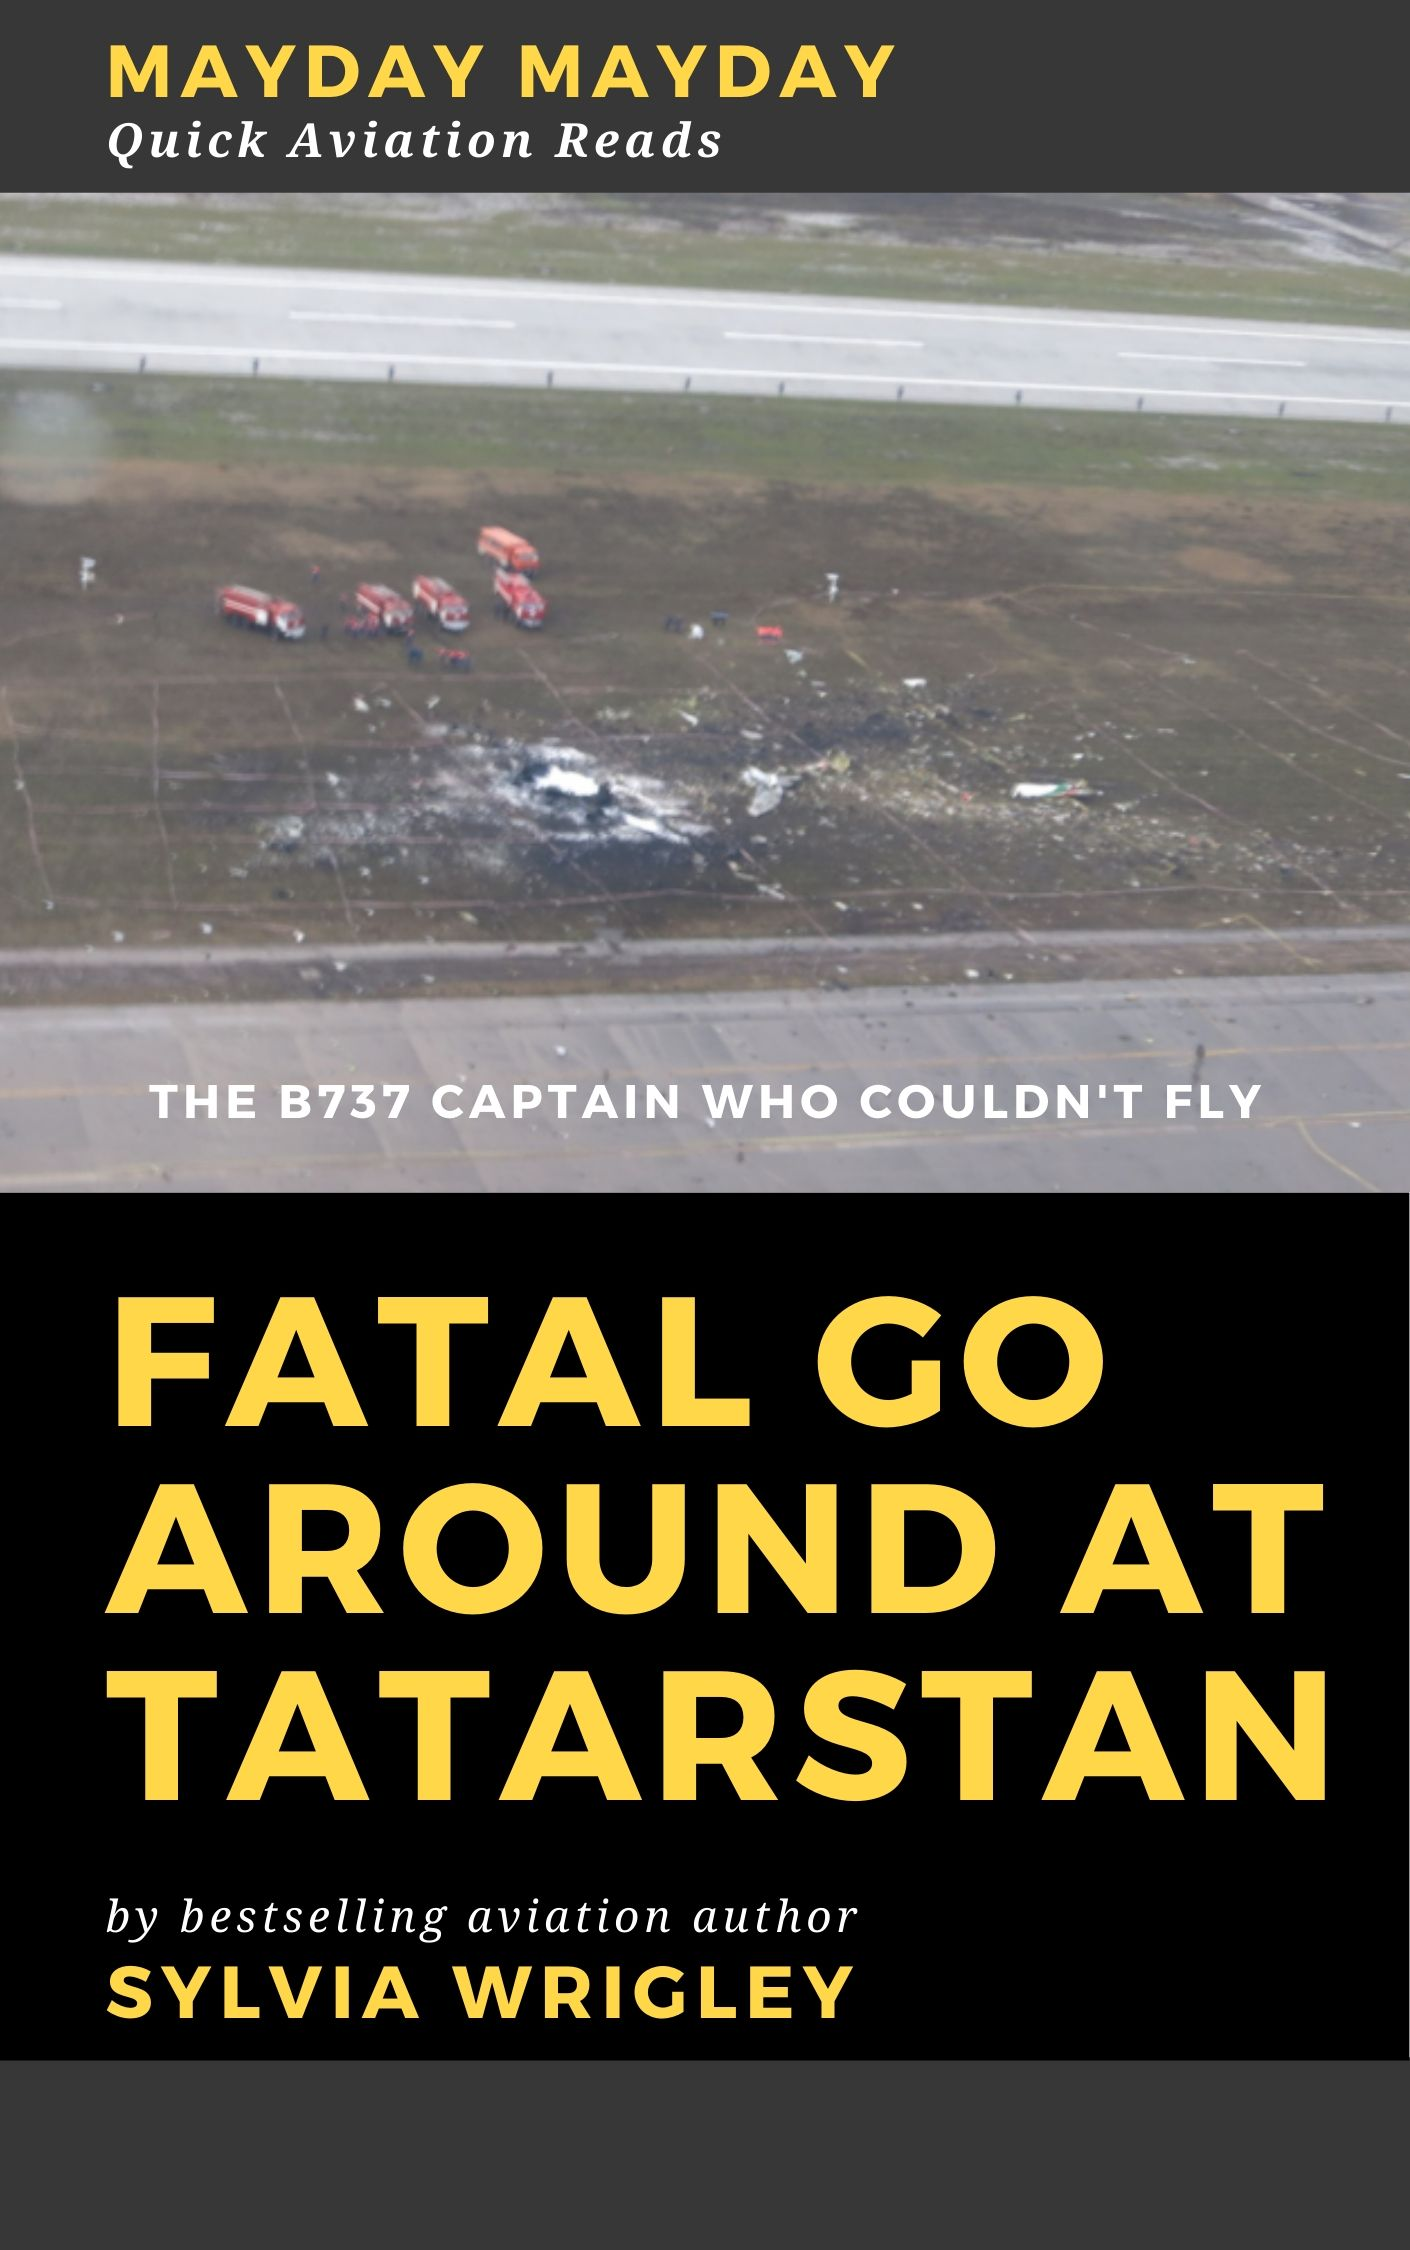 Fatal Go Around at Tatarstan: The B737 Captain Who Couldn't Fly